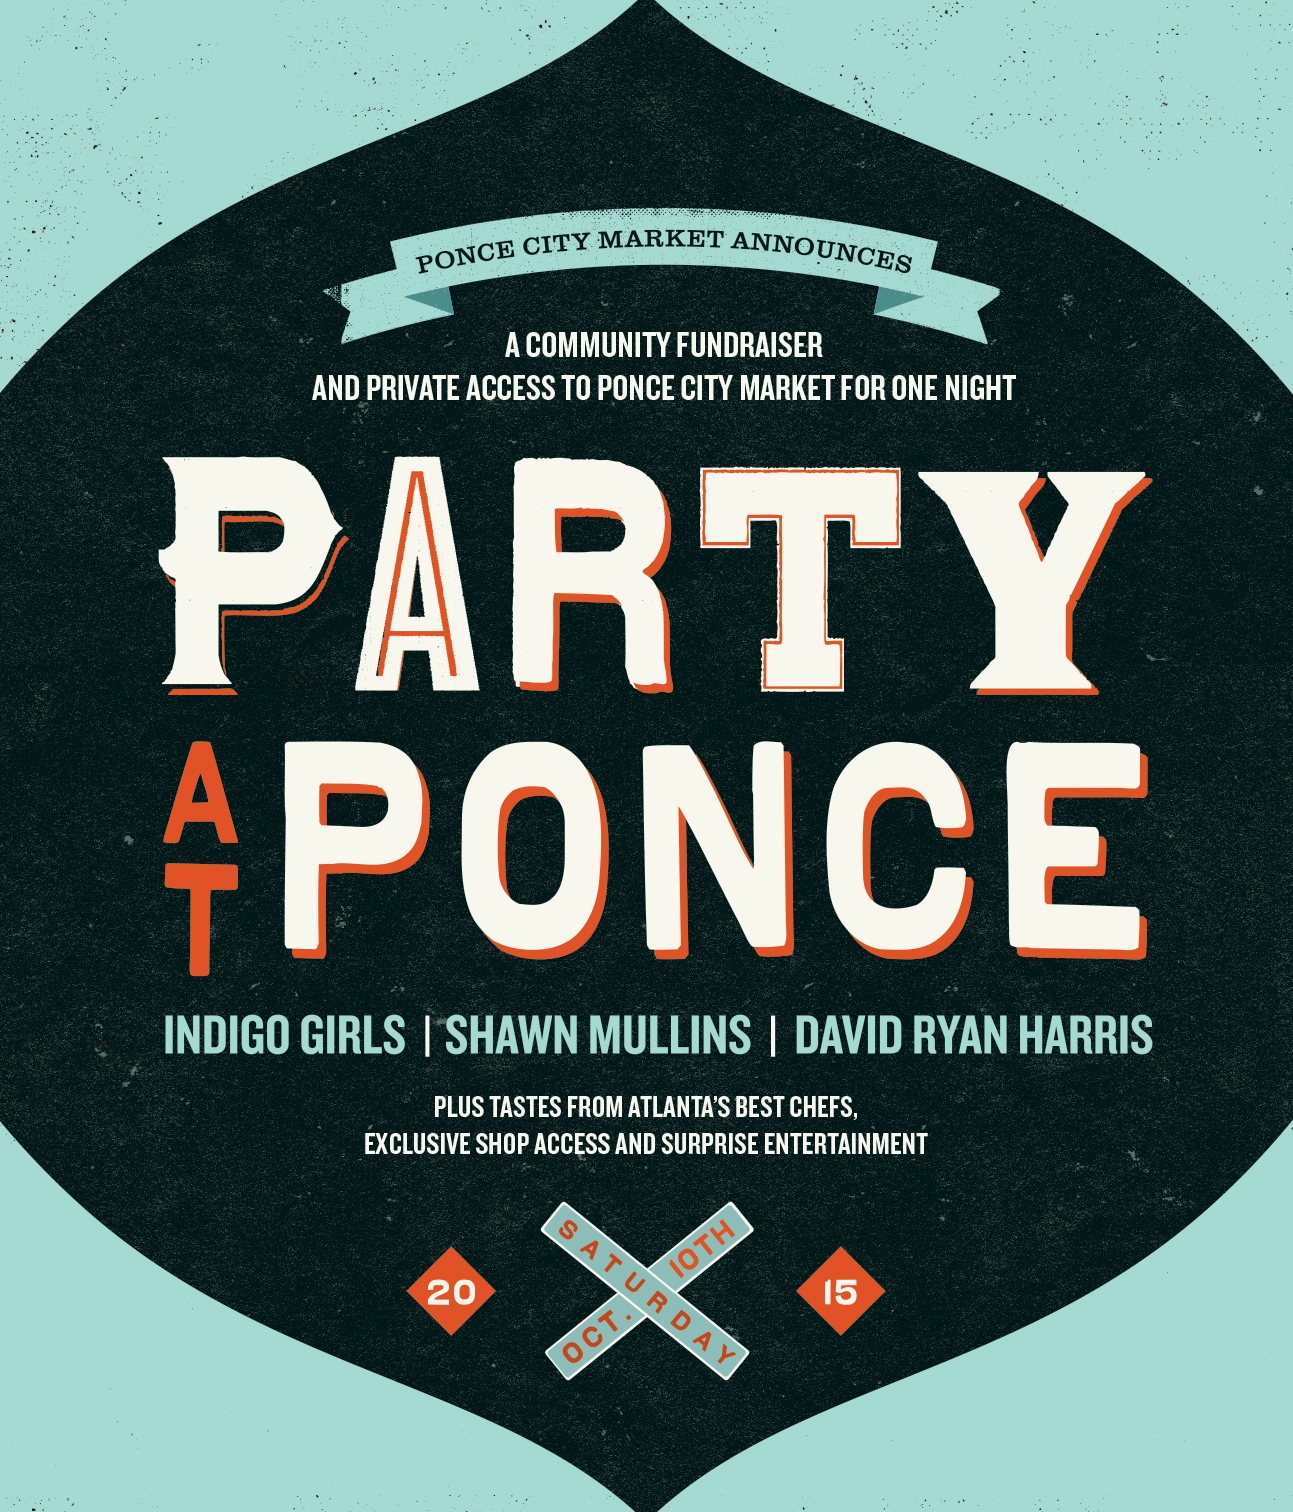 Party at Ponce Featuring the Indigo Girls and 18.21 Bitters Craft Cocktails!